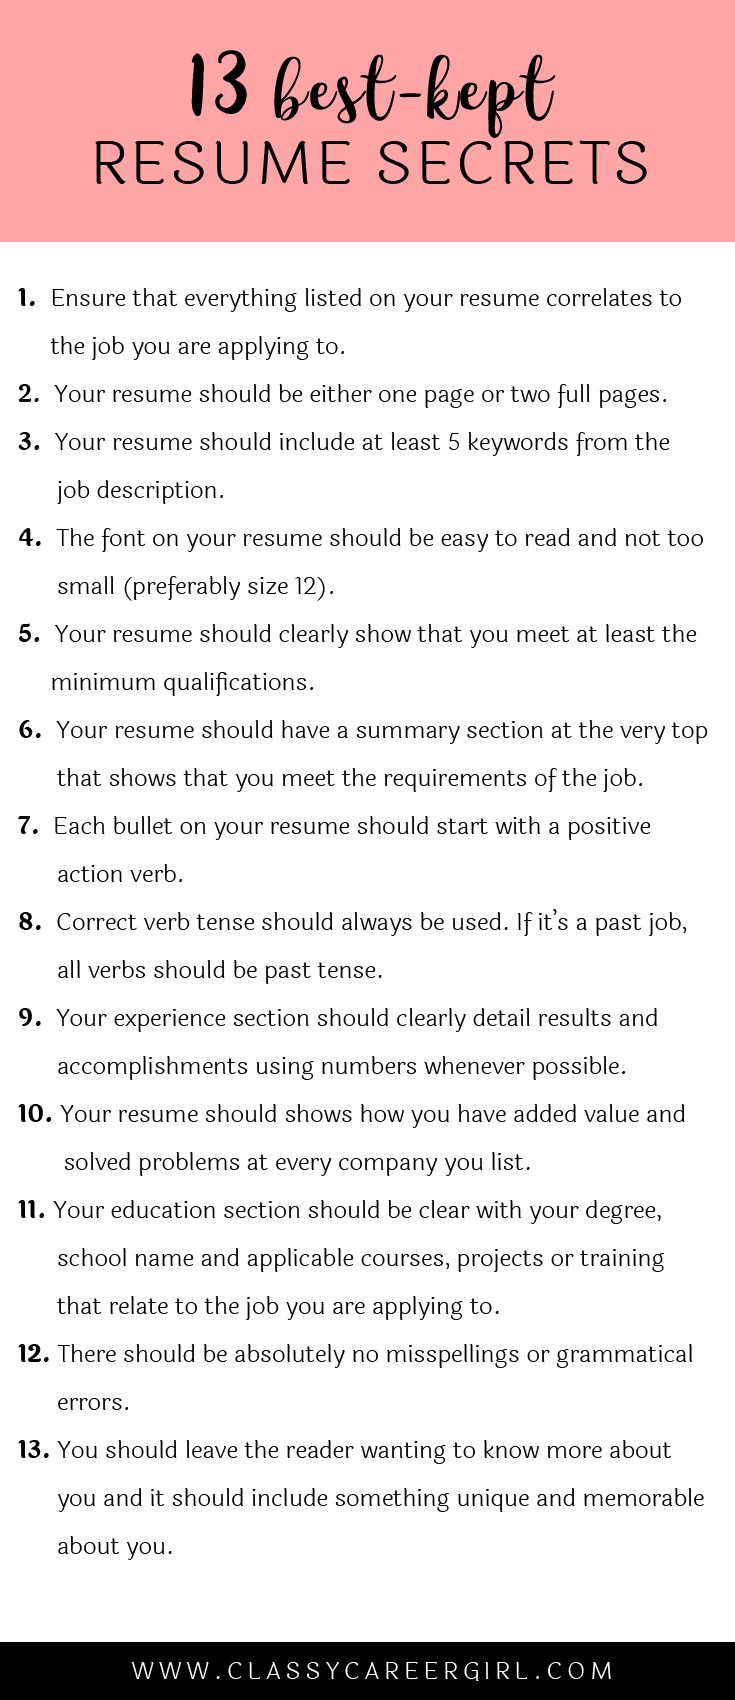 Opposenewapstandardsus  Splendid  Ideas About Resume On Pinterest  Cv Format Resume Cv And  With Remarkable Some Hiring Managers Will Toss Your Resume Out If You Dont Know These  With Archaic Entry Level Accounting Resume Also Resume Template Open Office In Addition Office Clerk Resume And Fill In Resume As Well As Social Media Manager Resume Additionally Restaurant General Manager Resume From Pinterestcom With Opposenewapstandardsus  Remarkable  Ideas About Resume On Pinterest  Cv Format Resume Cv And  With Archaic Some Hiring Managers Will Toss Your Resume Out If You Dont Know These  And Splendid Entry Level Accounting Resume Also Resume Template Open Office In Addition Office Clerk Resume From Pinterestcom